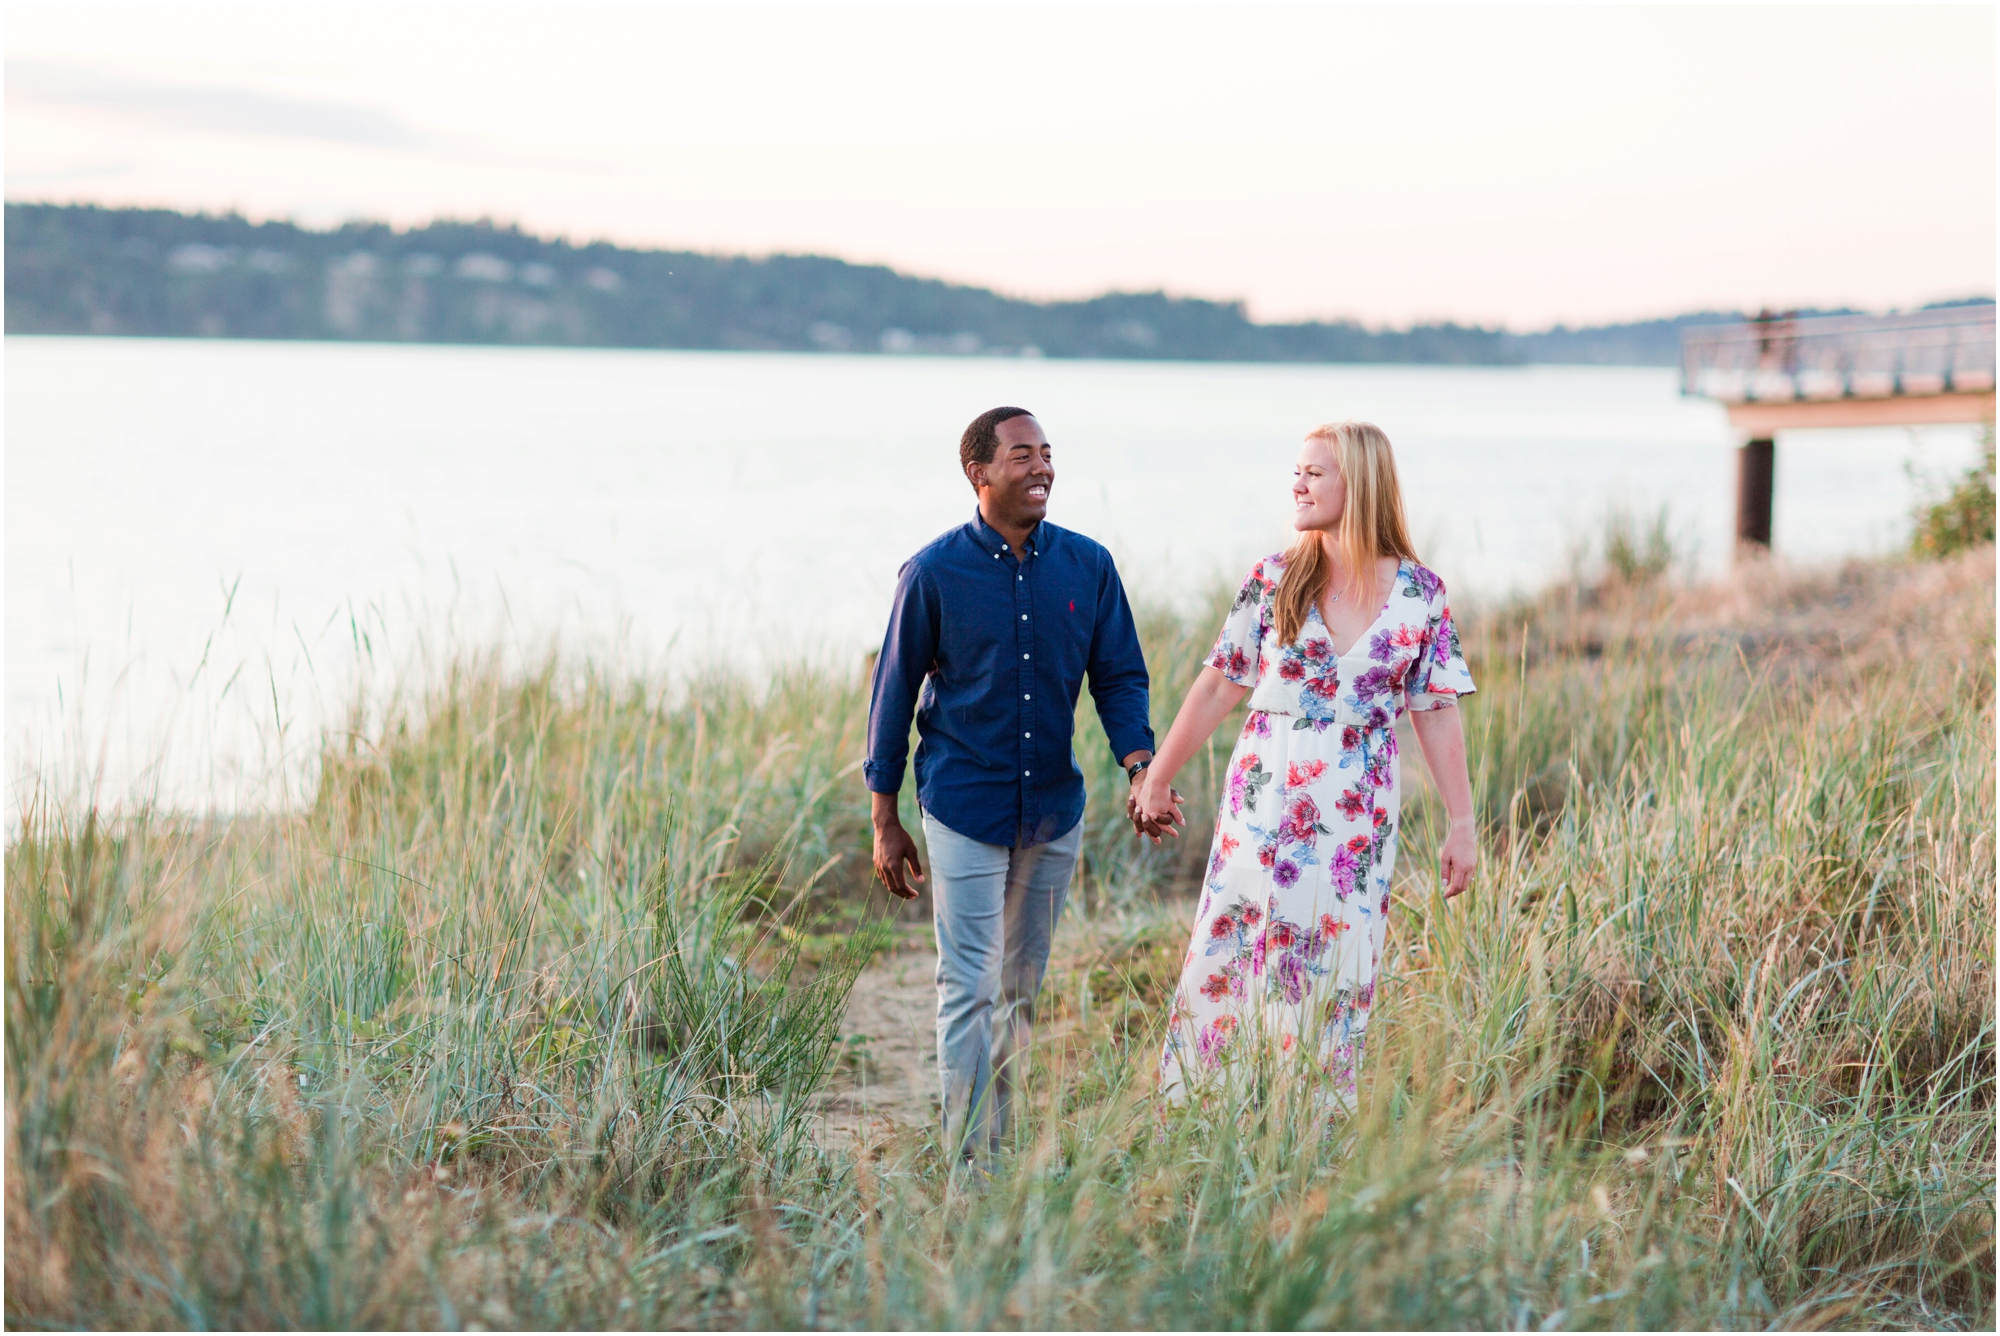 Chambers Bay engagement shoot in Tacoma, WA. Photos by Briana Calderon Photography based in the greater Seattle Area._1276.jpg